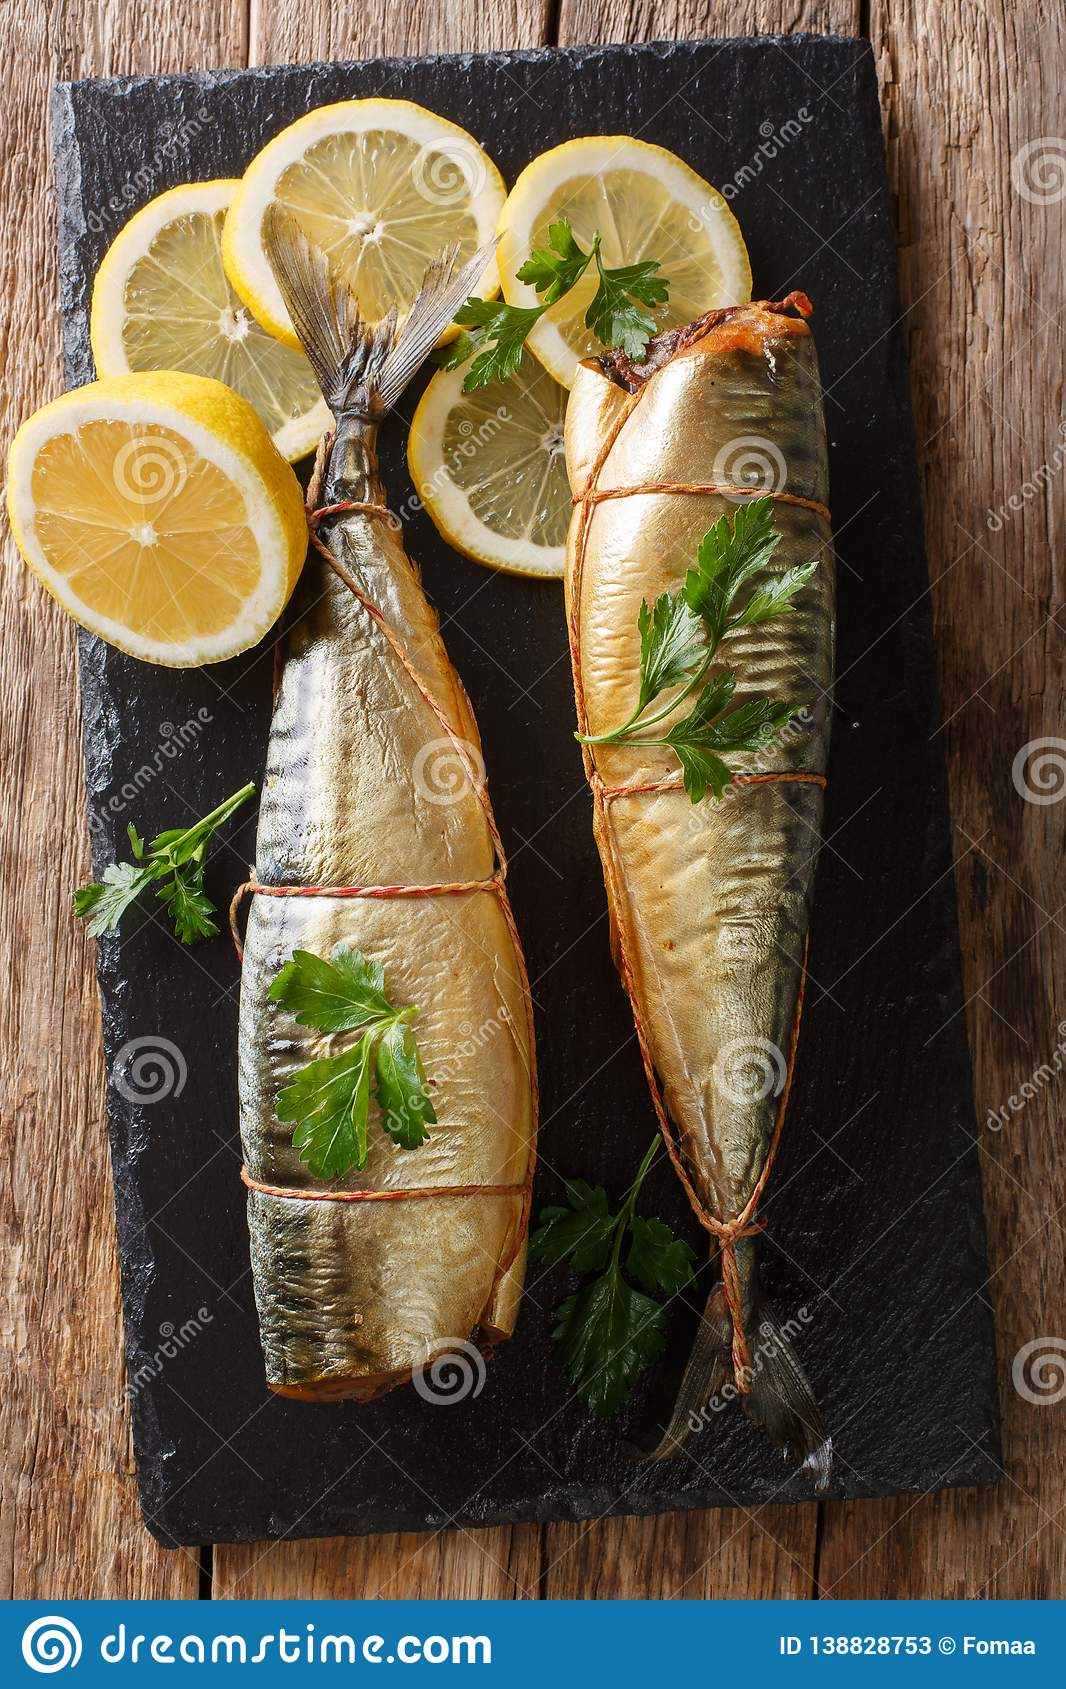 Smoked mackerel with lemons and parsley closeup on a slate board on the table. Vertical top view